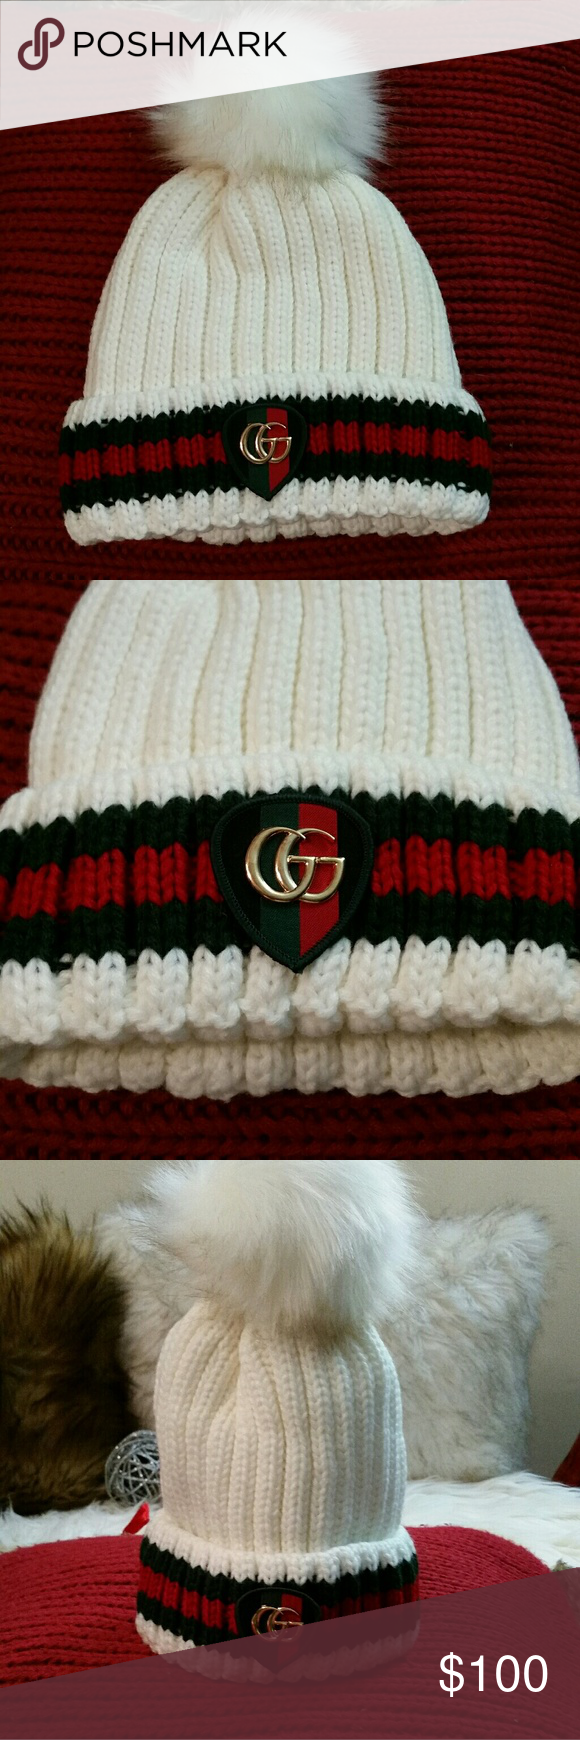 Winter hat New inspired winter hat high quality without box Gucci  Accessories Hats 64d2dedb9f4